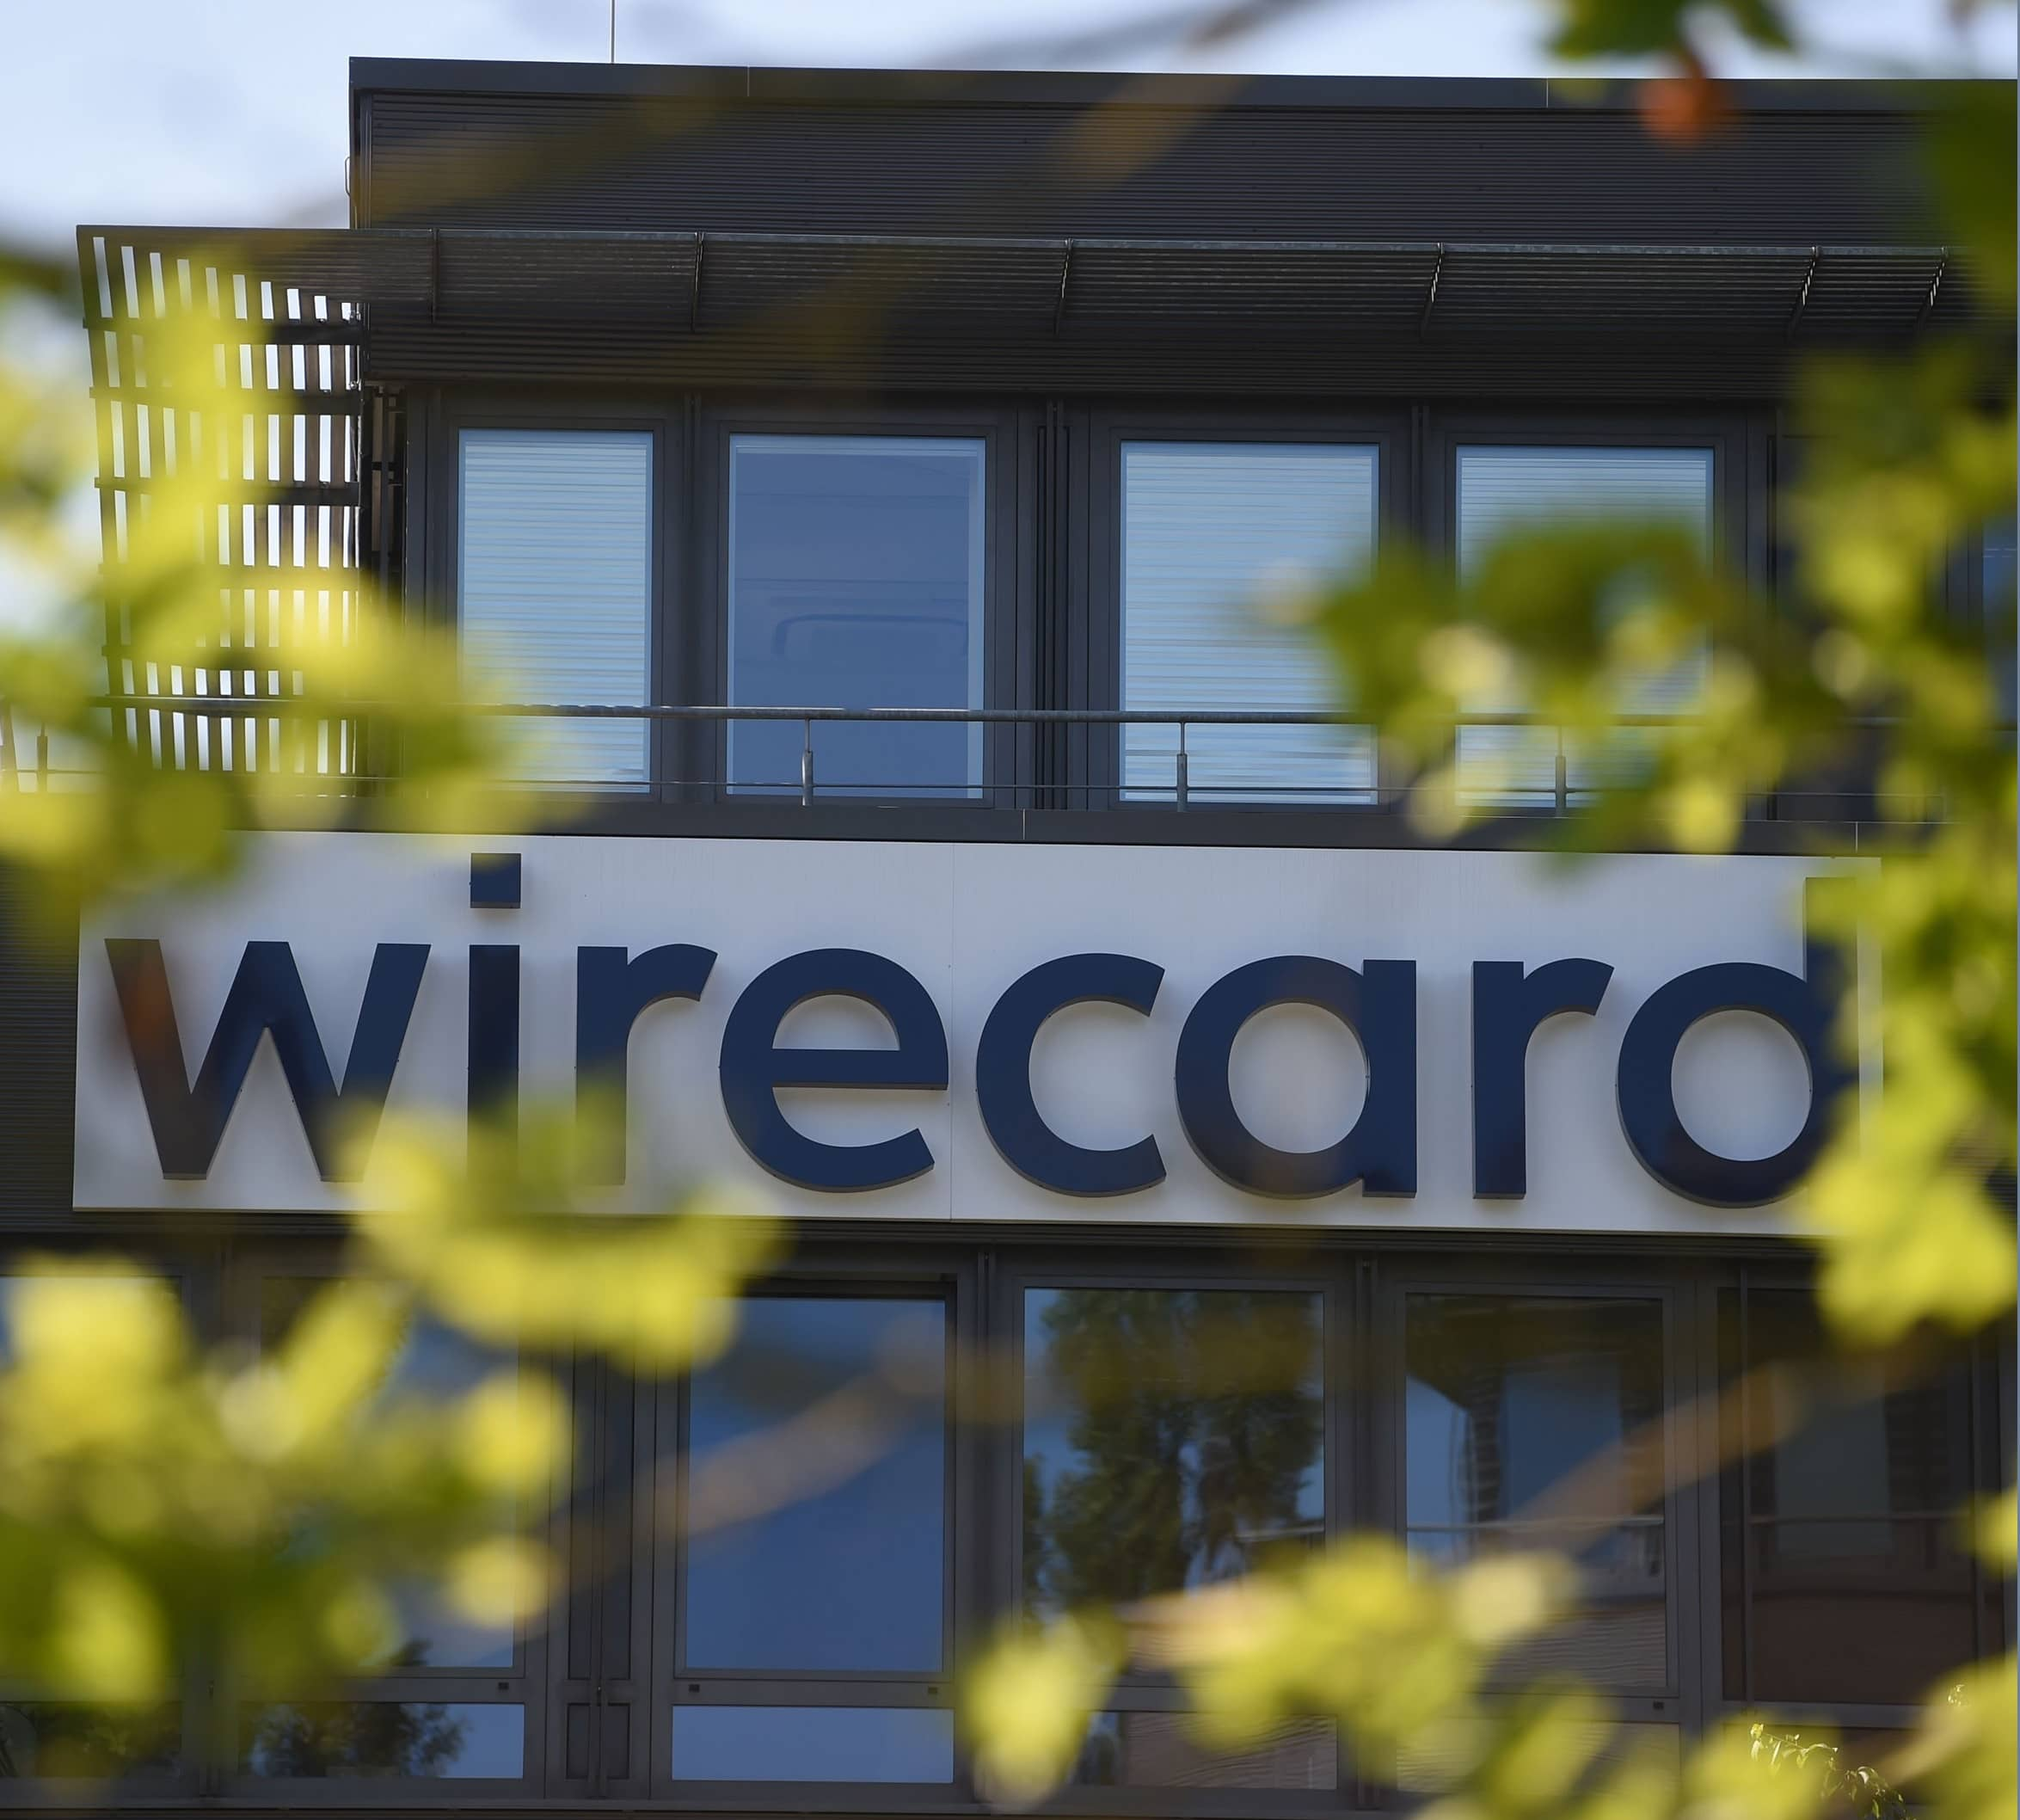 WIRECARD HEADQUARTERS RAIDED IN PROBE OF ACCOUNTING SCANDAL